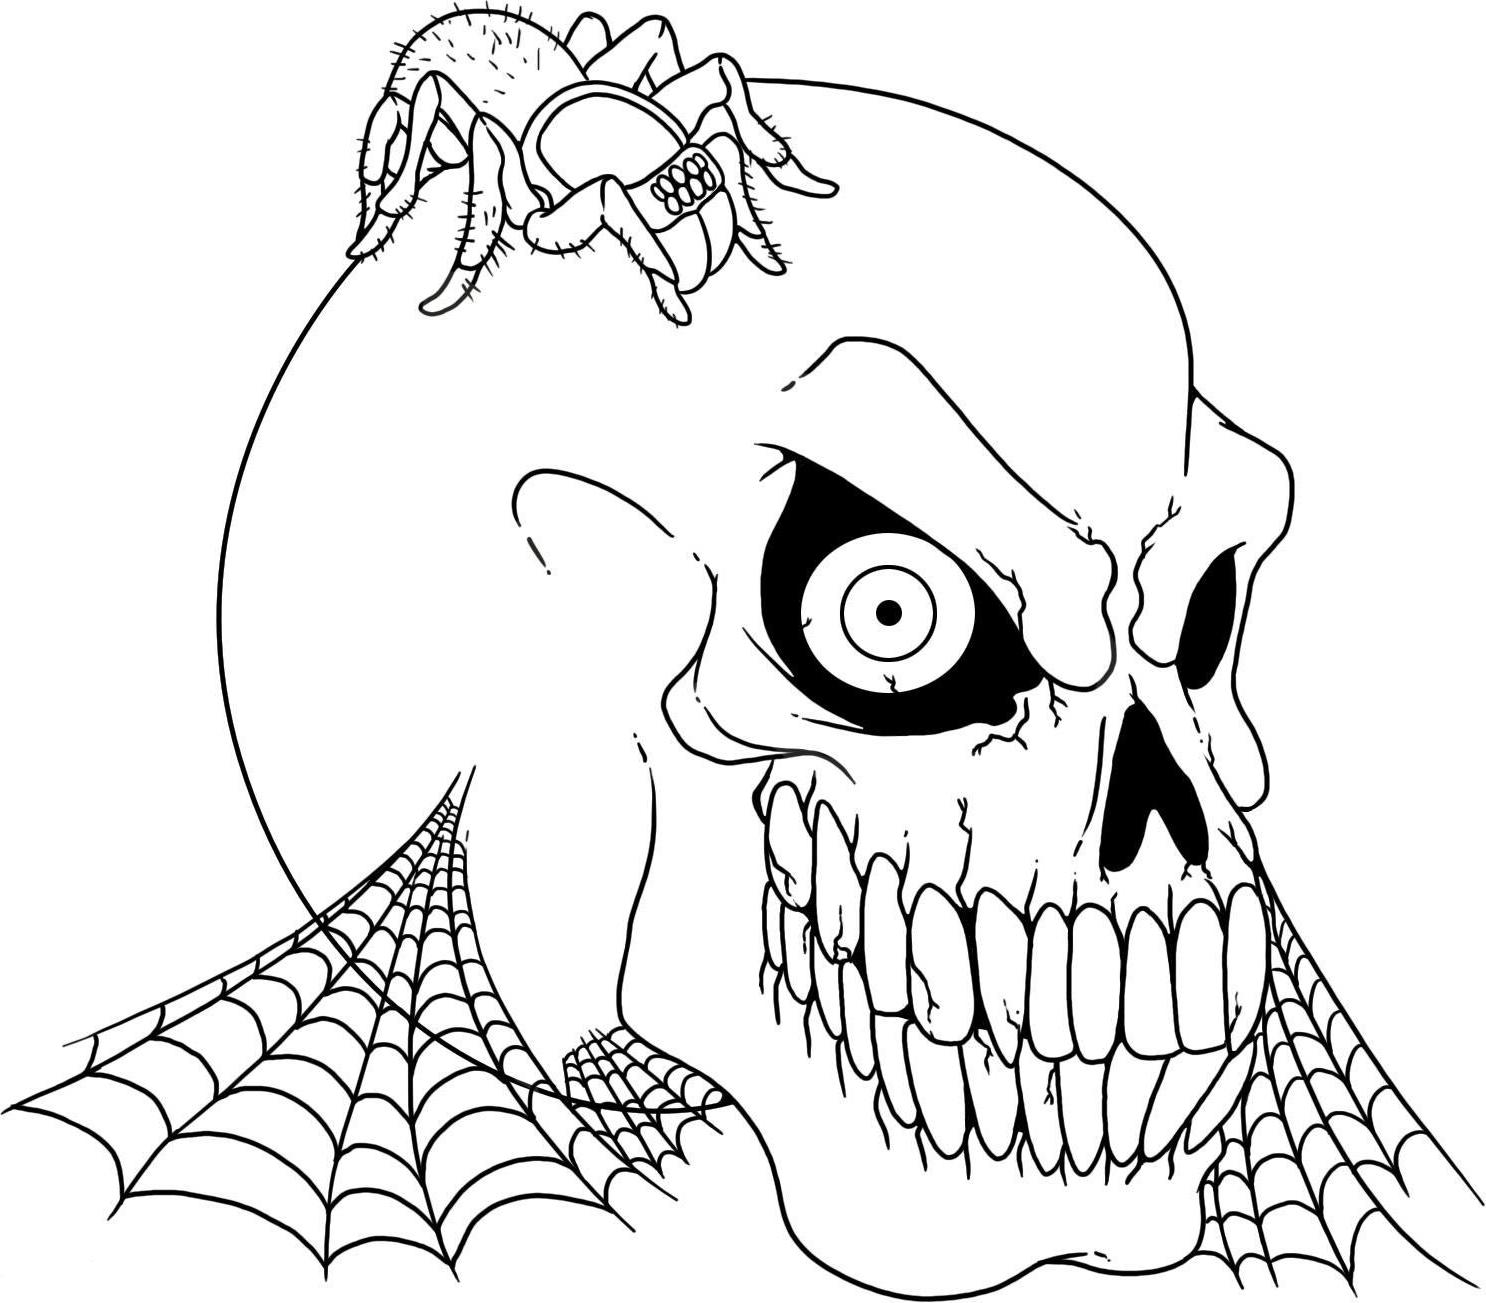 scary black cat coloring pages - photo#23